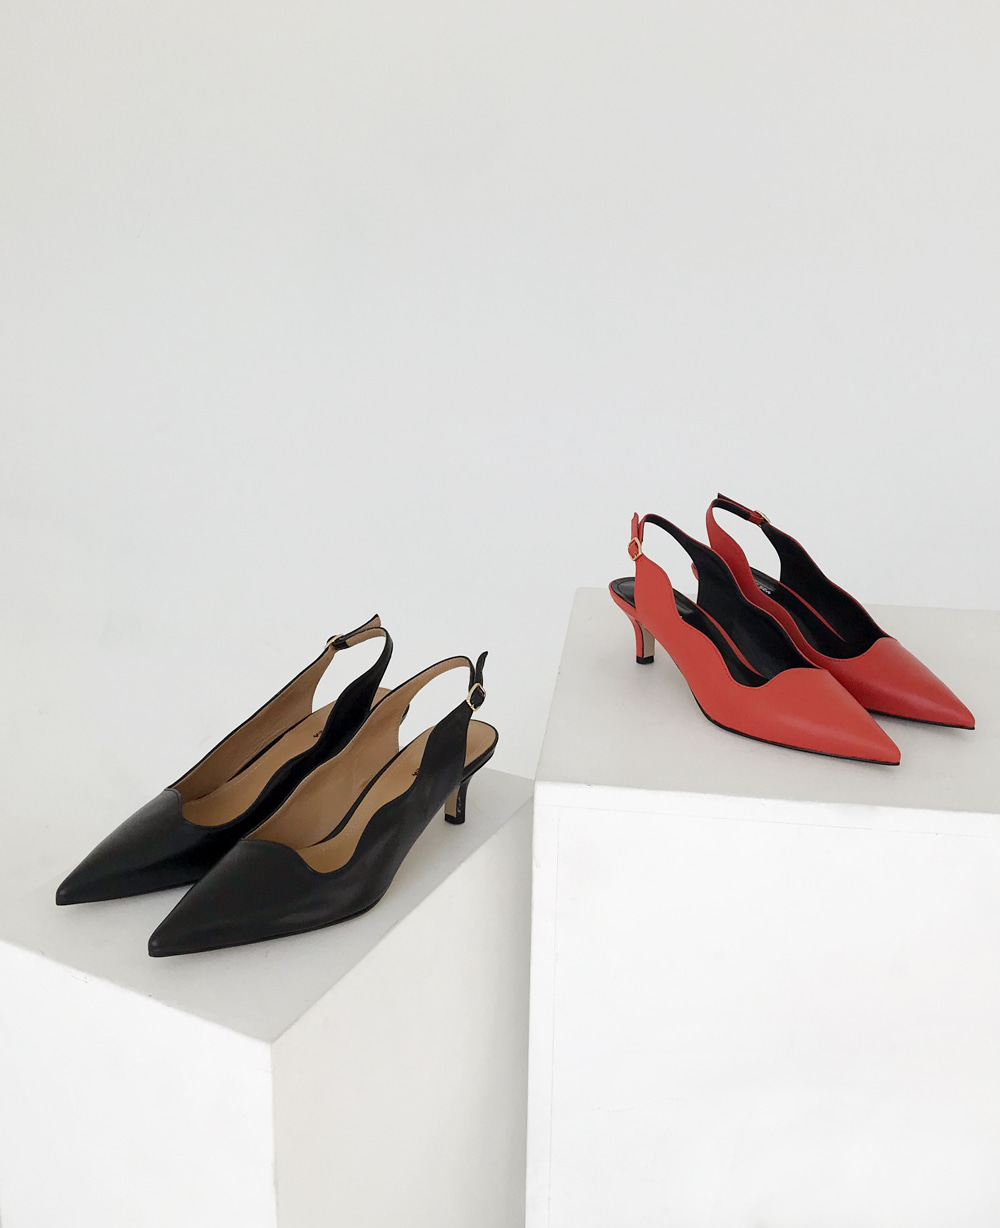 Haze Daze Sling backs - BLACK / BRICK RED (5cm)